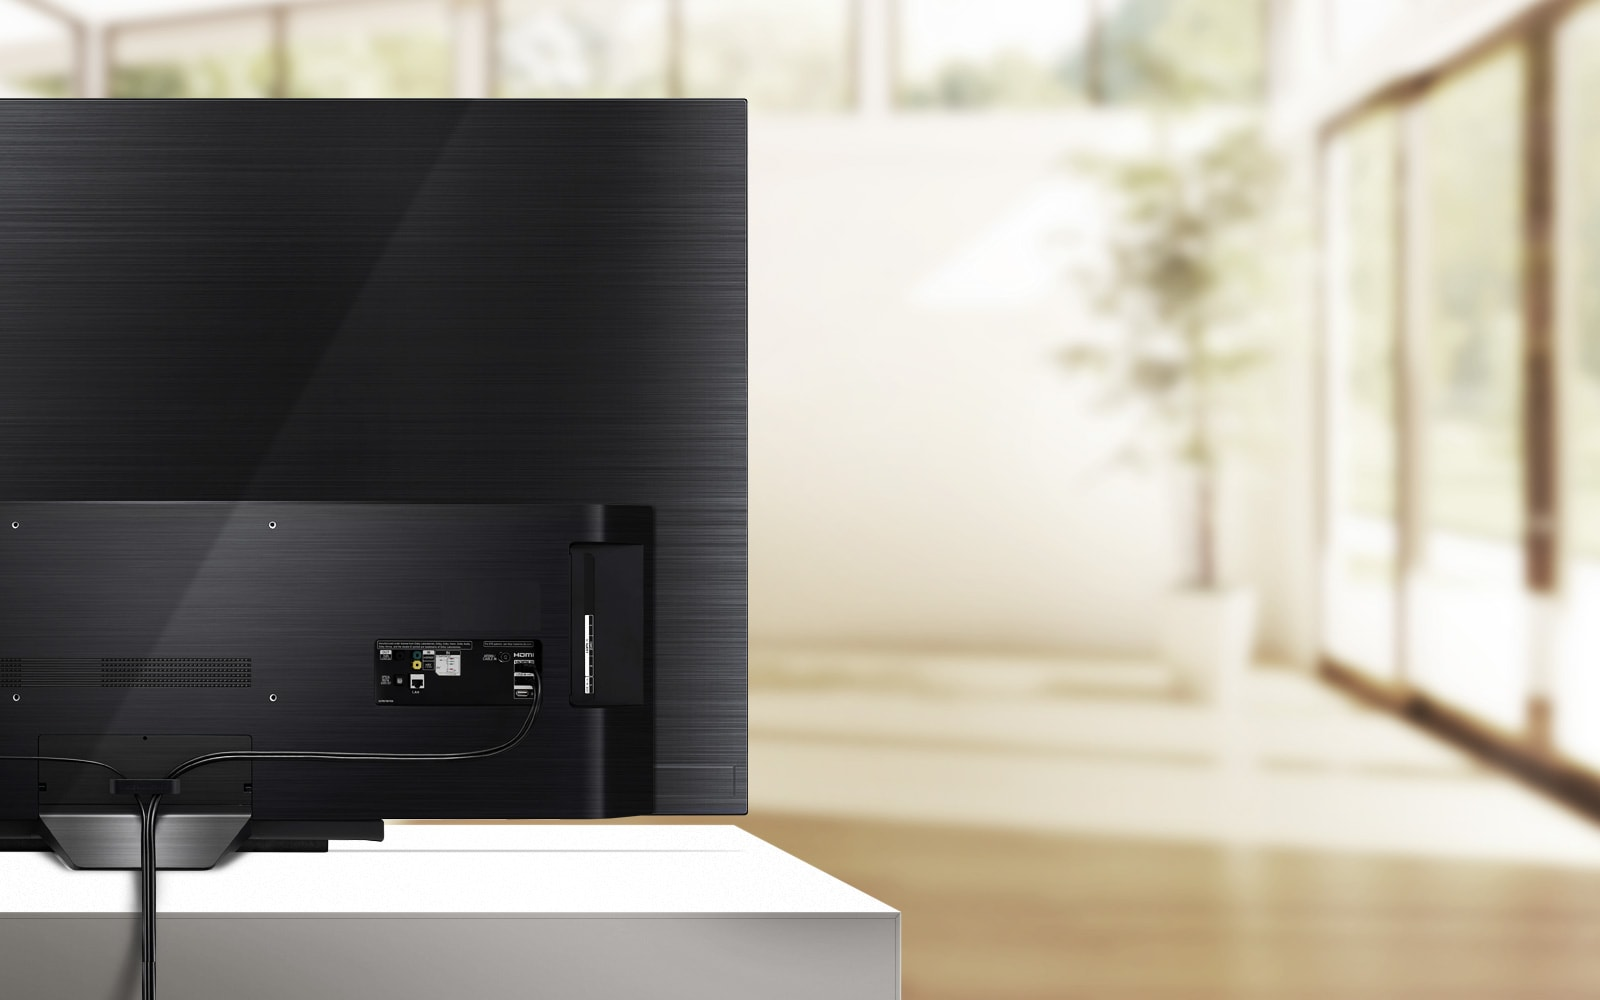 LG Cable Management OLED TV